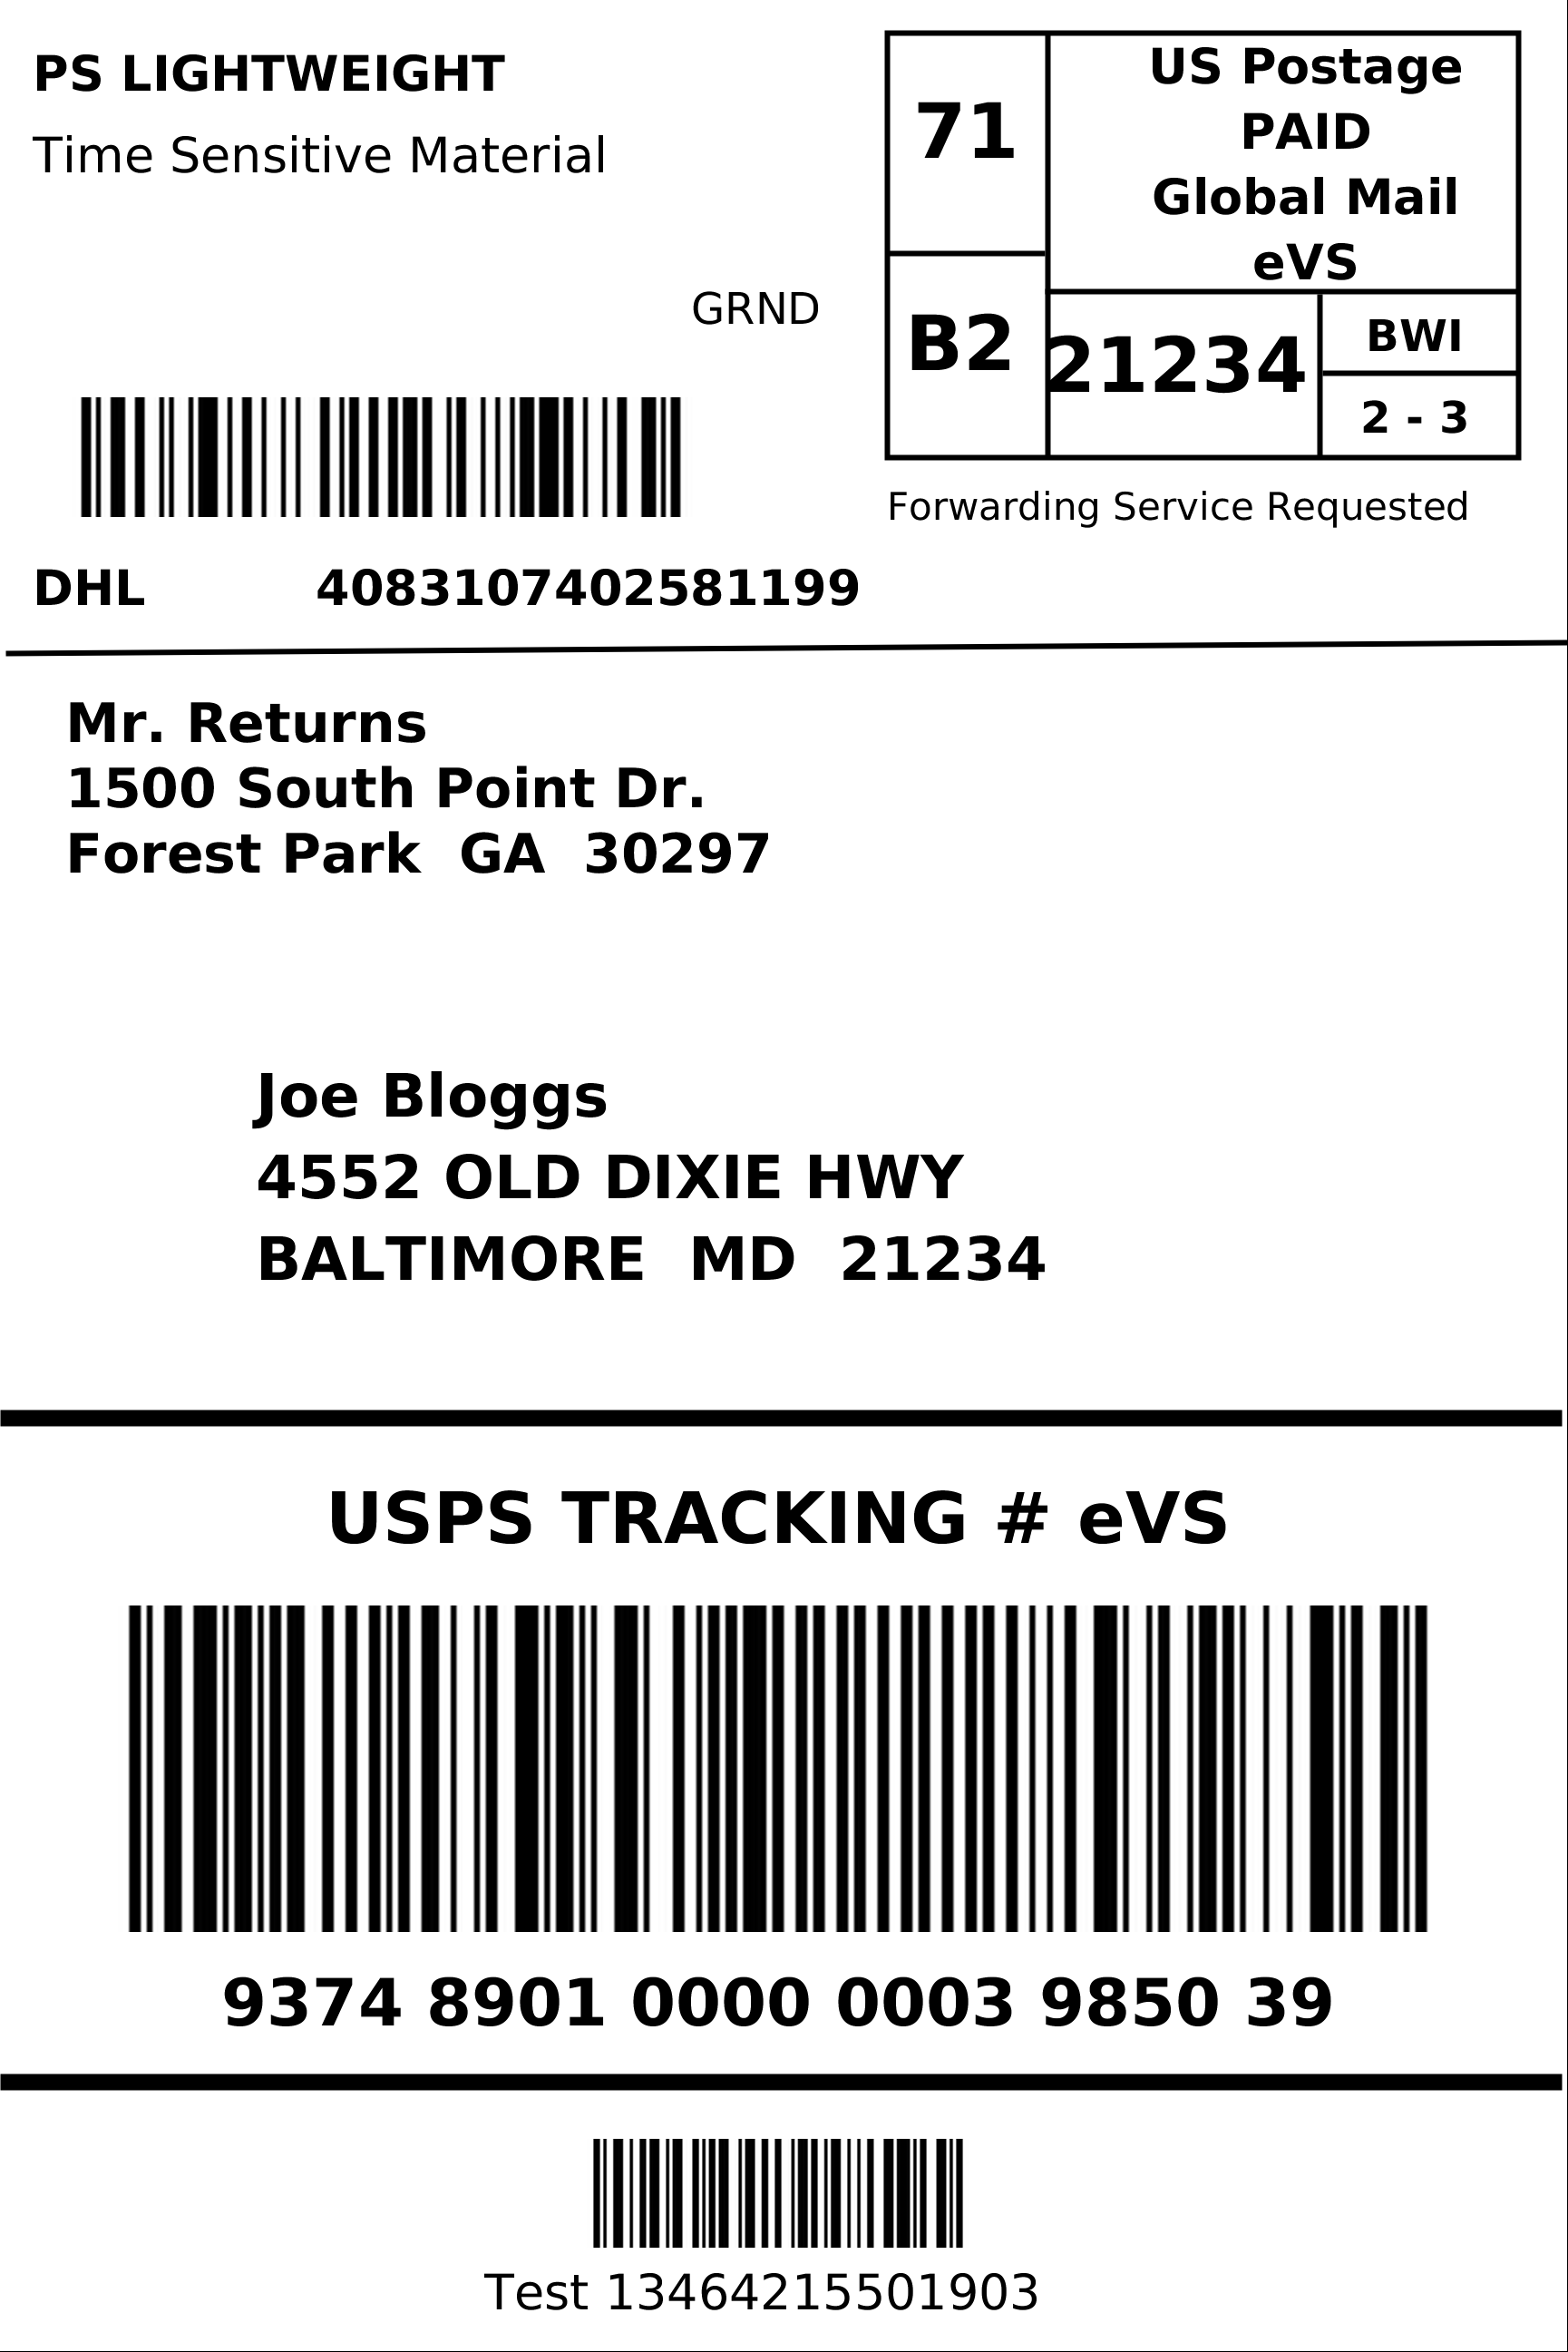 Shipping Label Example Kleobeachfixco - Post it labels templates